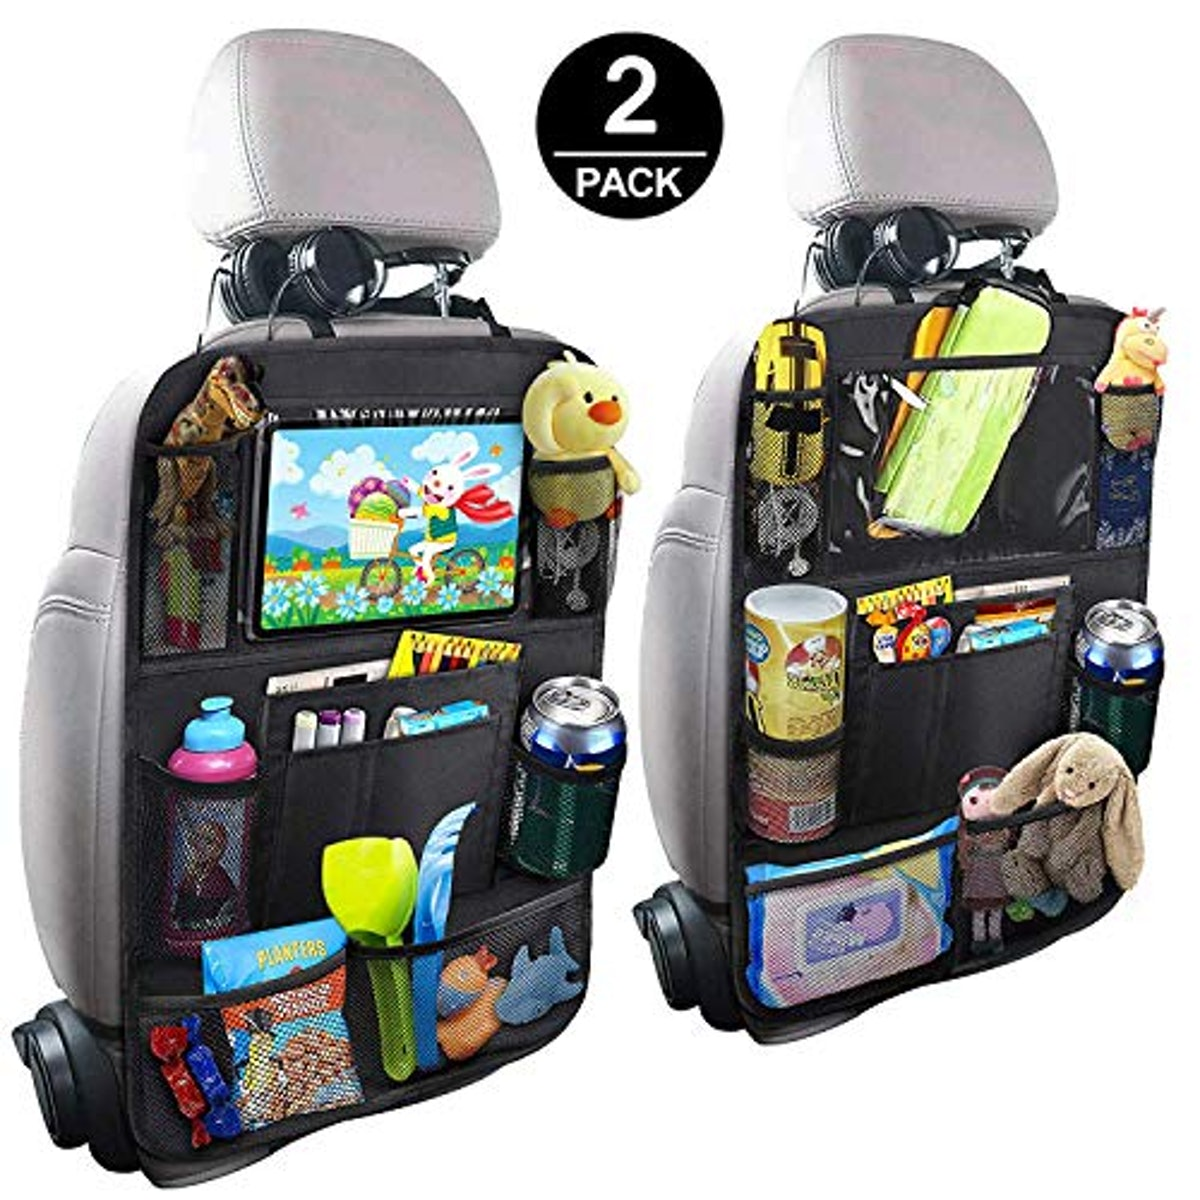 BAOZOON Car Backseat Organizer with Touch Screen Tablet Holder